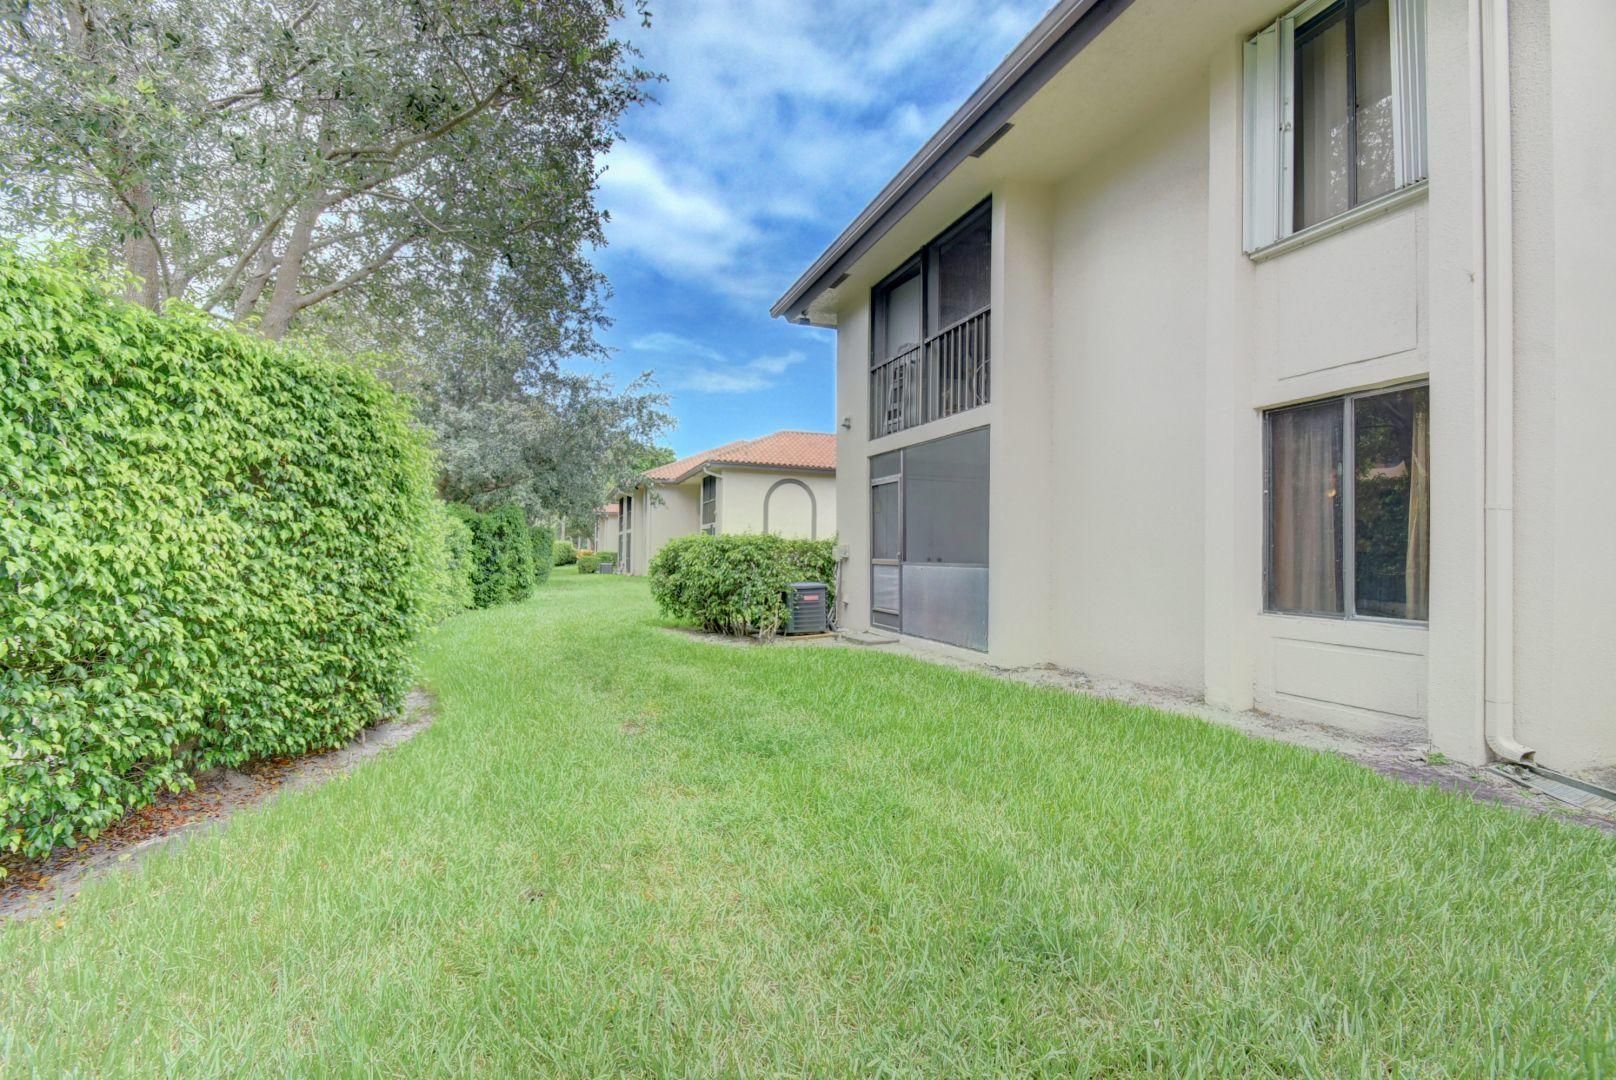 351 Club Circle, Boca Raton, Florida 33487, 2 Bedrooms Bedrooms, ,2 BathroomsBathrooms,Condo/Coop,For Sale,Club,1,RX-10444562